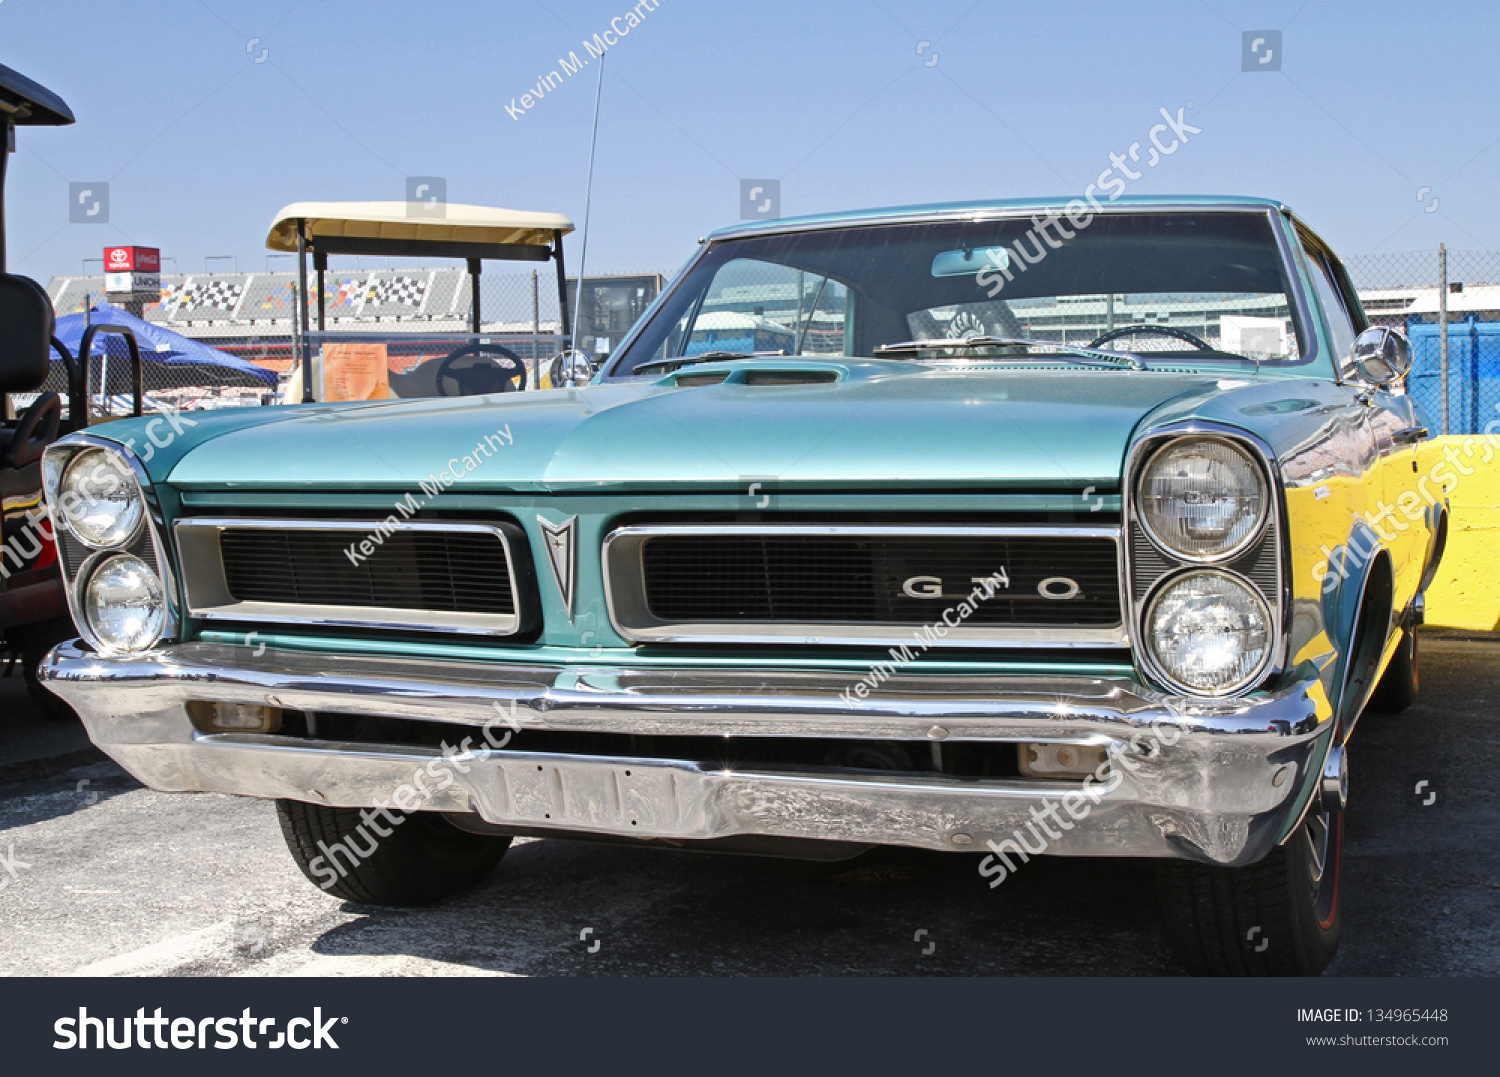 Concord Nc April 6 1965 Pontiac Stock Photo Edit Now 134965448 1960s Gto Judge A Automobile On Display At The